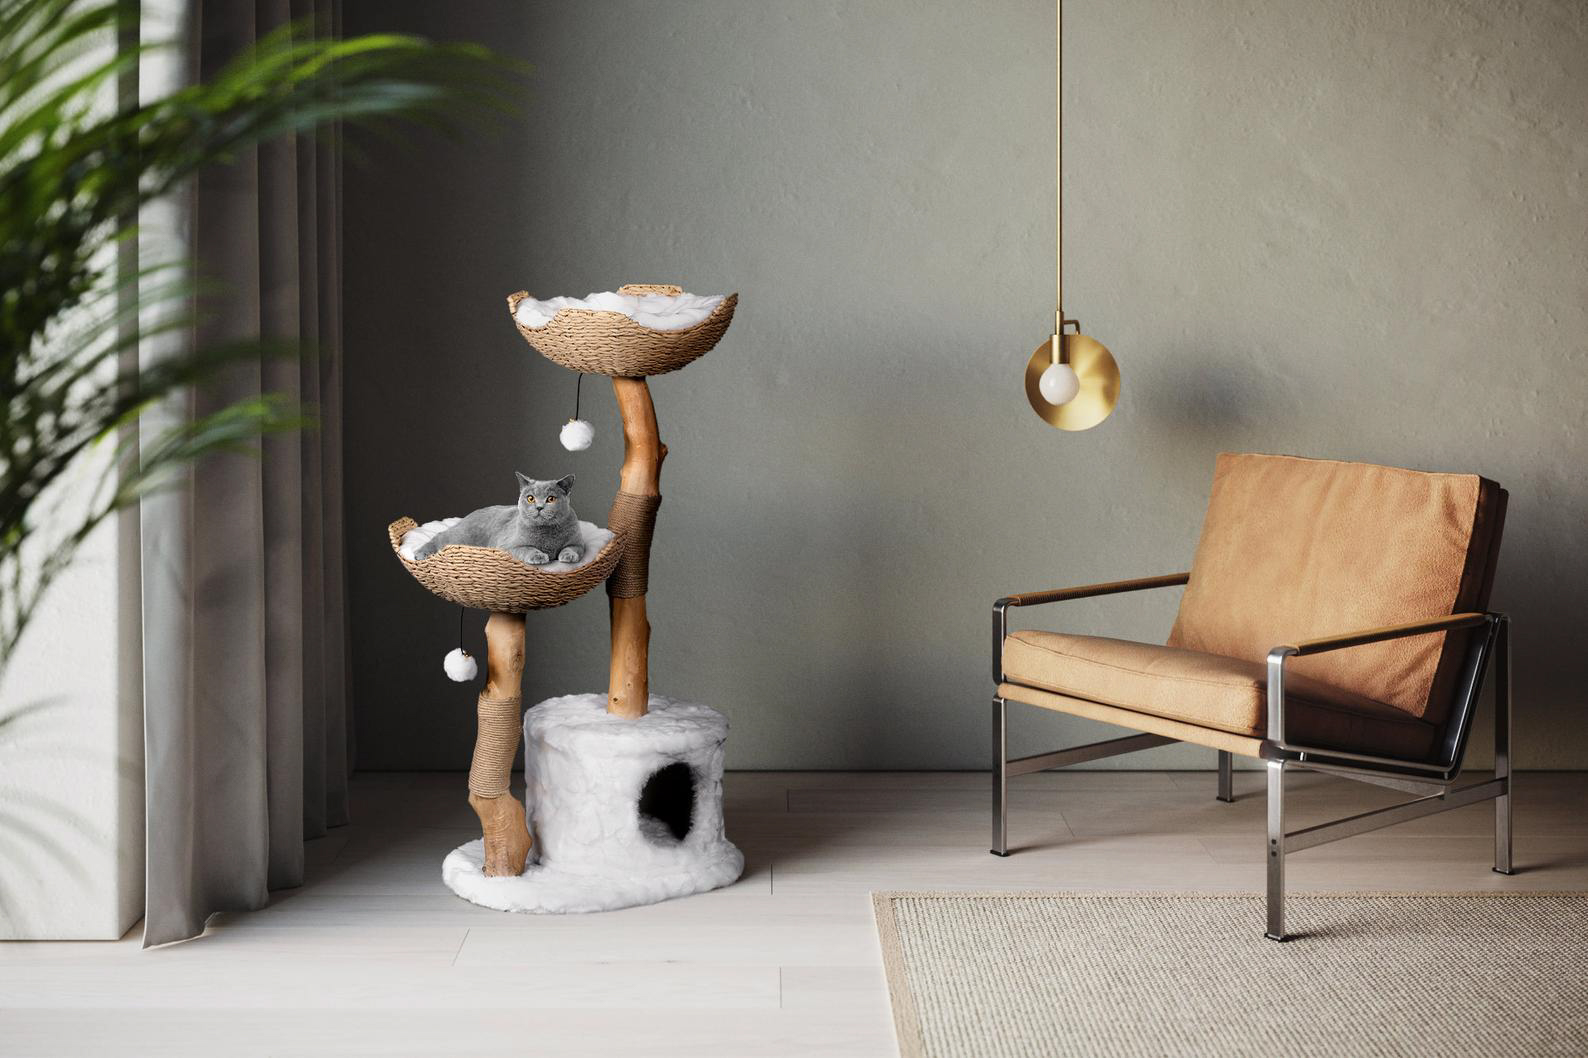 The Mau Store Modern Wooden Cat Tree & Condo